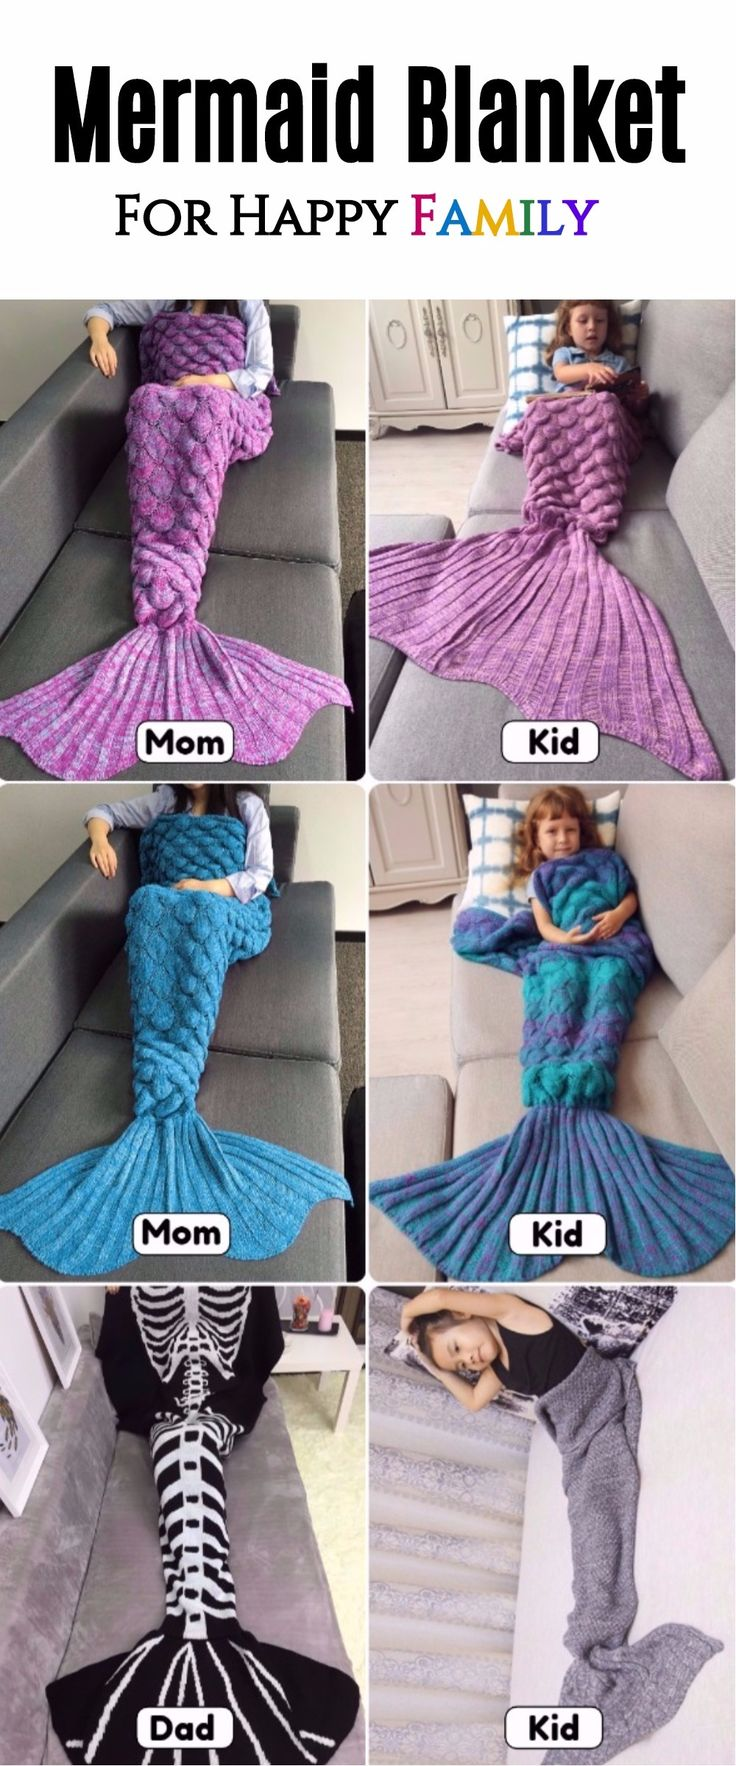 #FreeShipping #Mermaid #Blanket #ForFamily Start From $5 | Up To 75% OFF | Sammydress.com